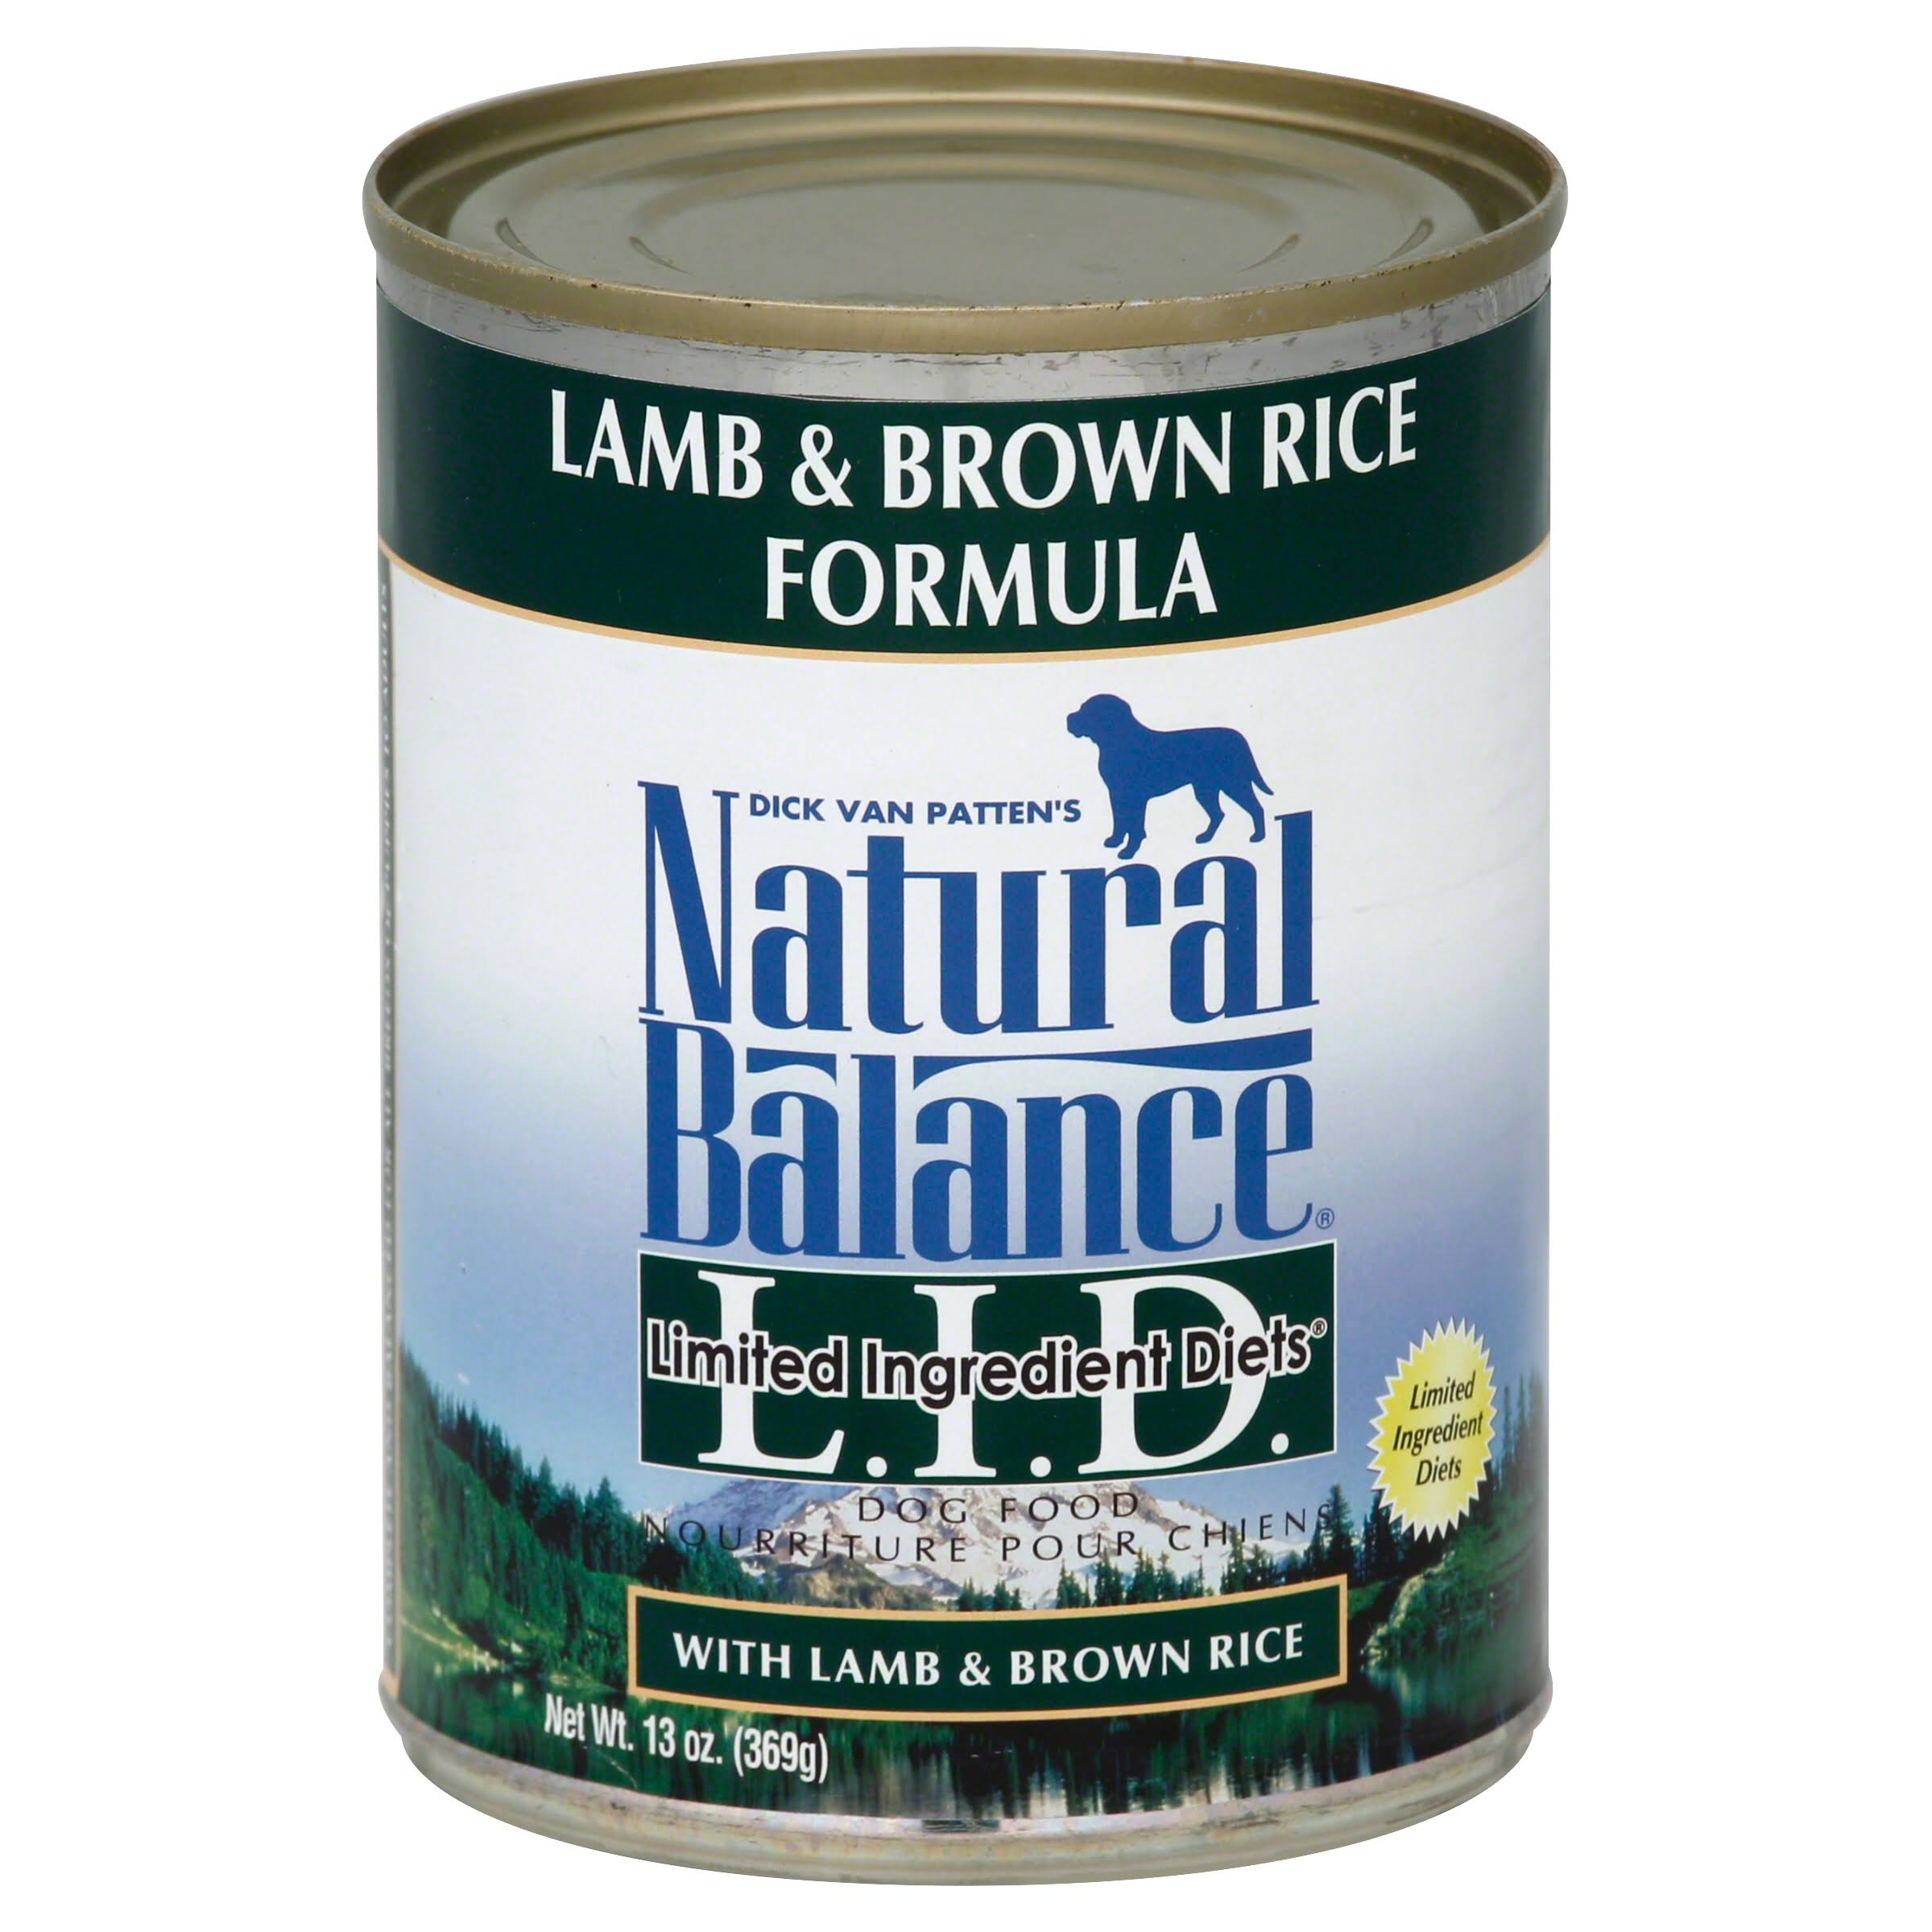 Natural Balance Limited Ingredient Diet Dog Food - Lamb & Brown Rice Formula, 369g